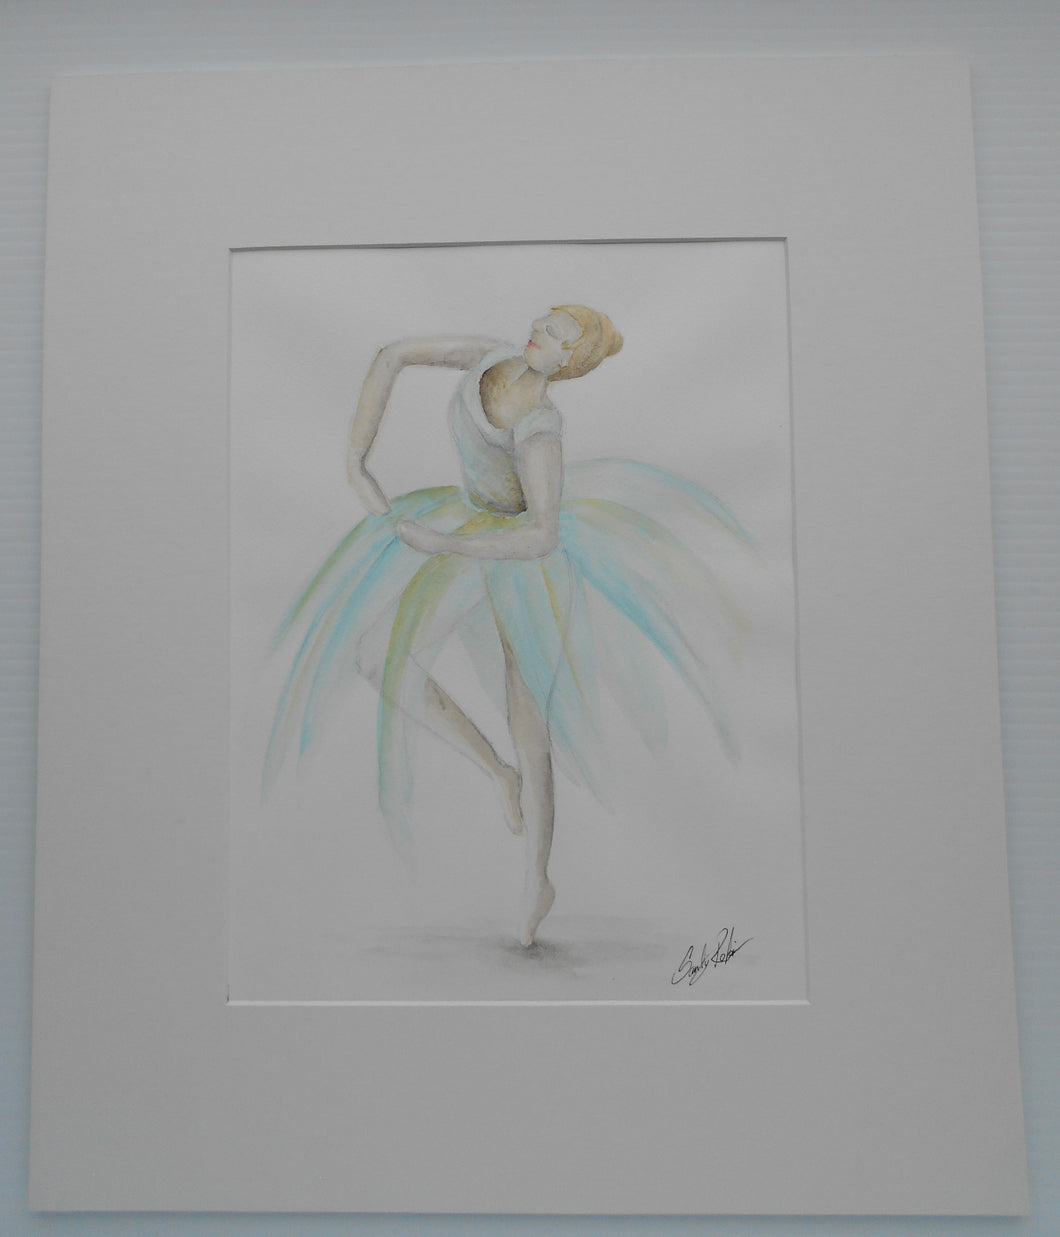 'Untitled', (Ballerina) by Sandy Robinson